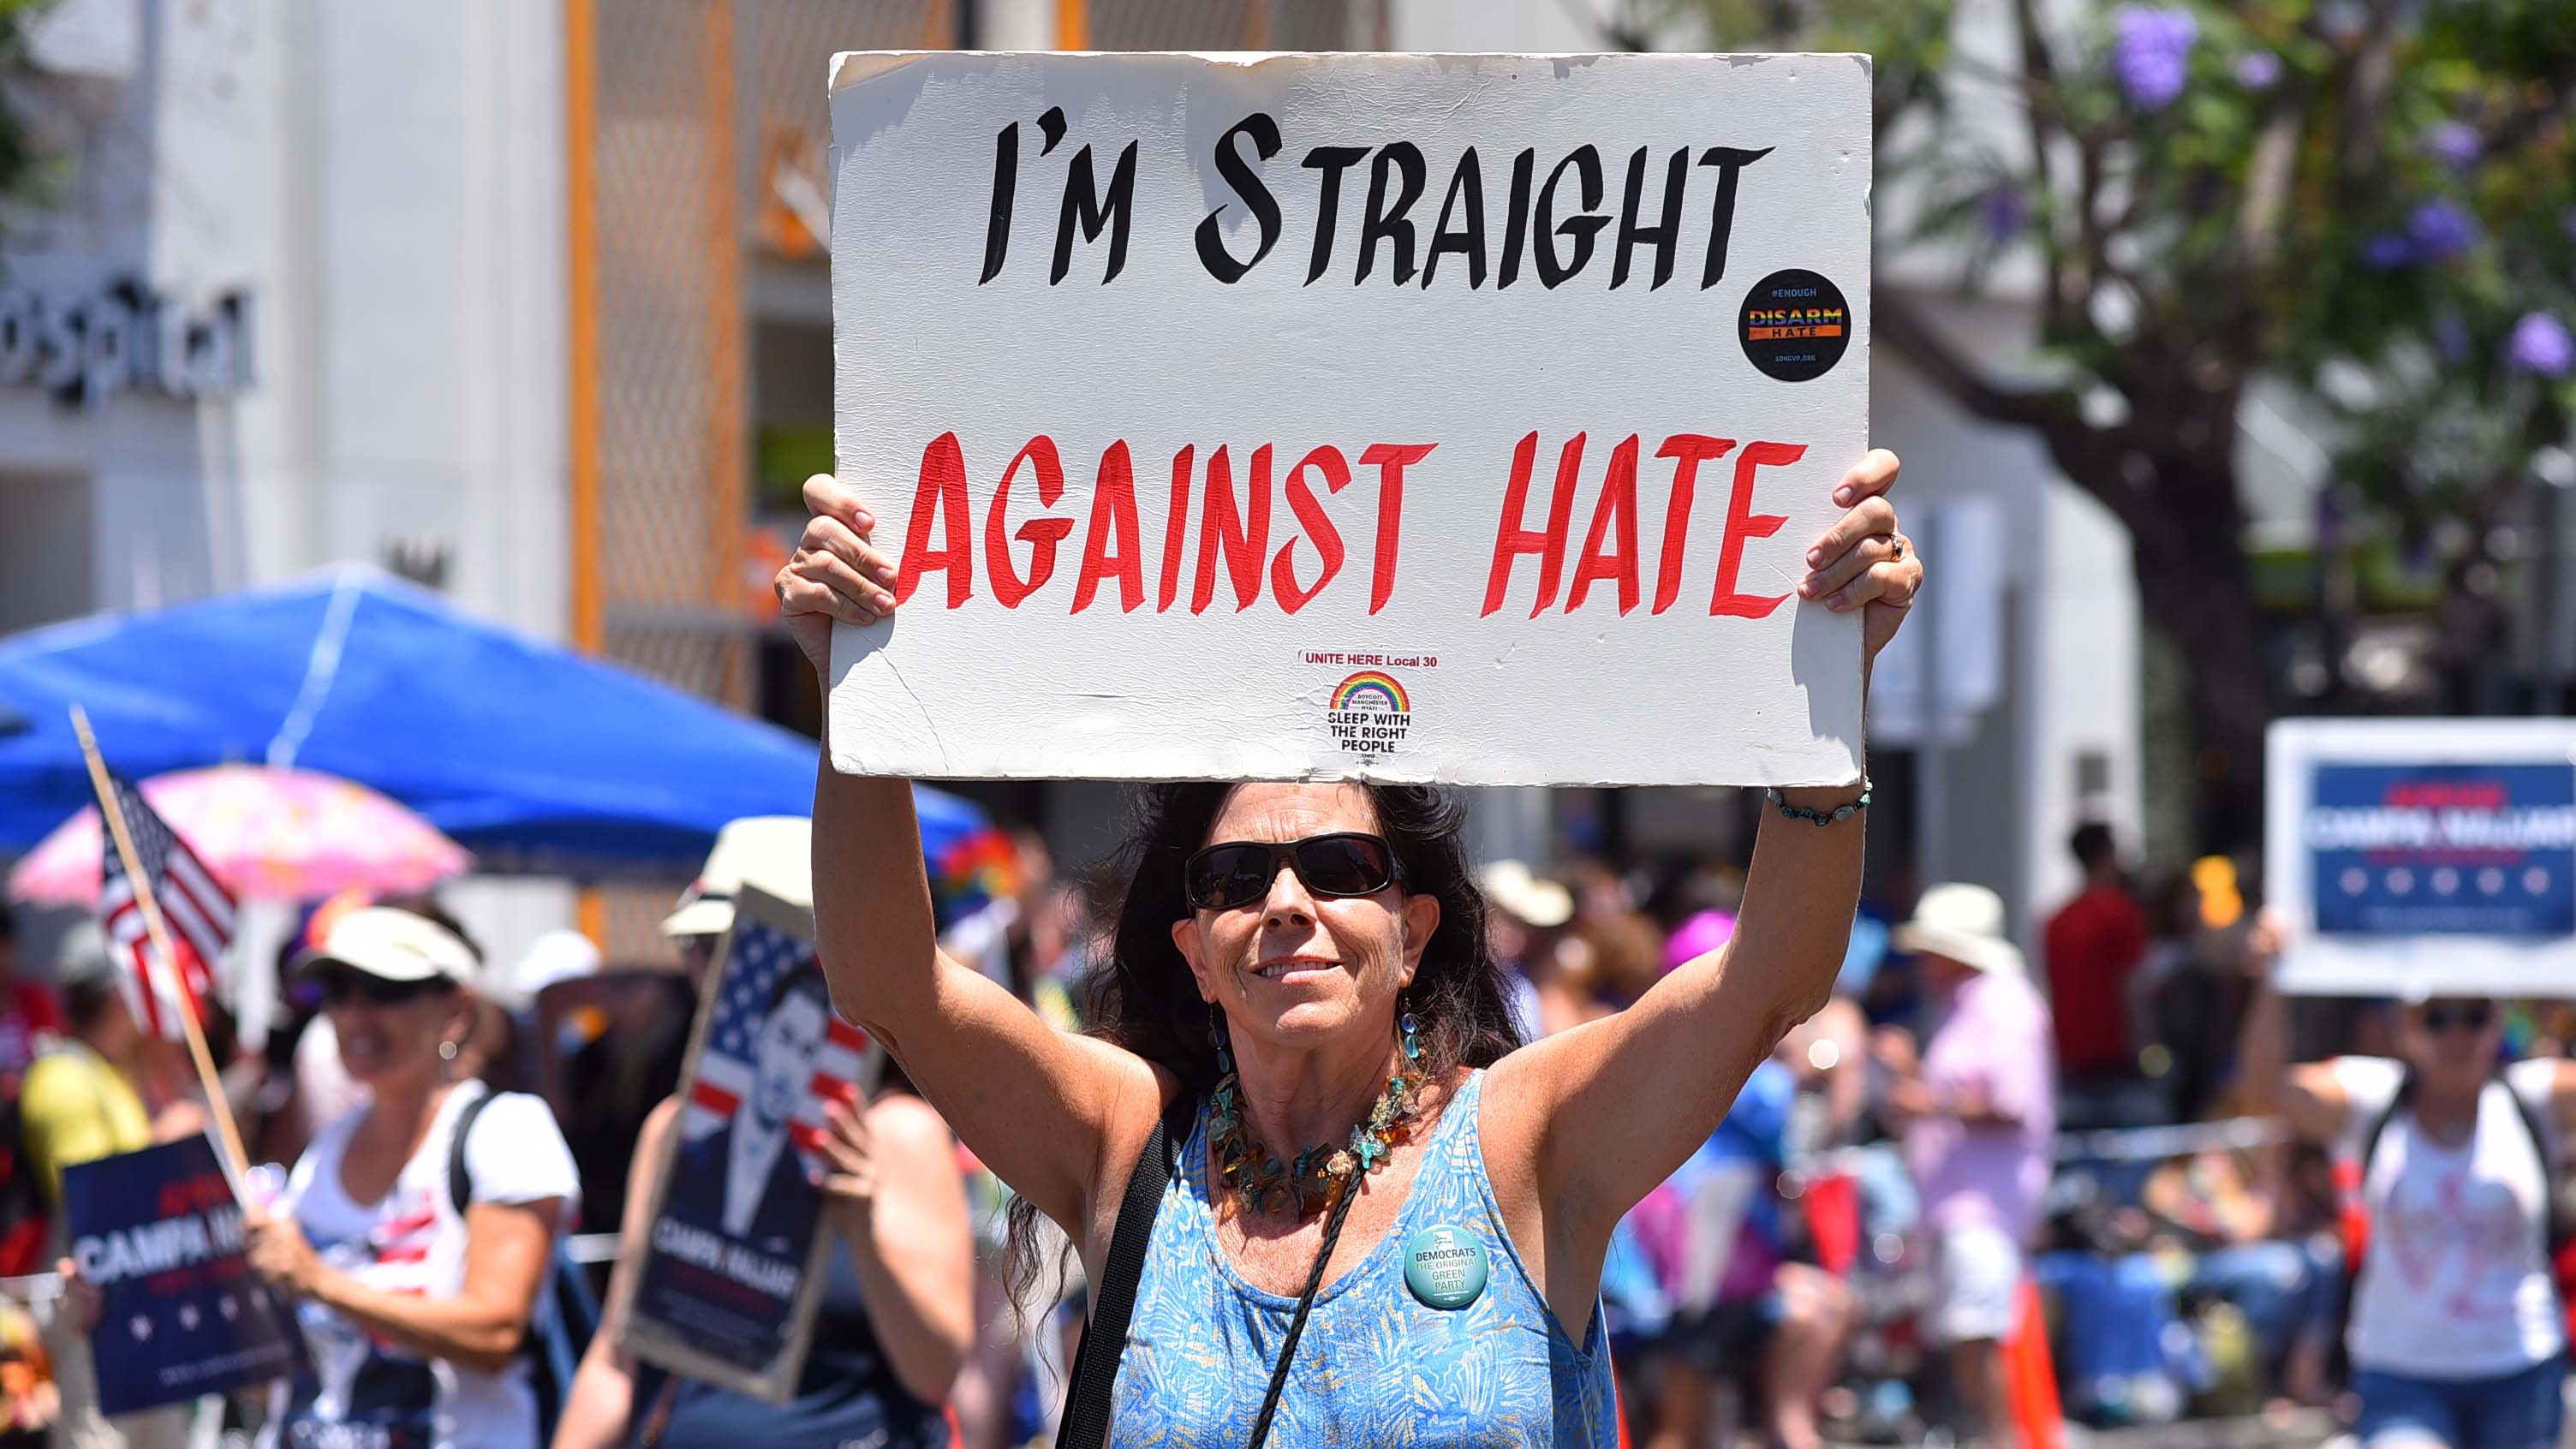 A member of a Democratic contingent carries a supportive sign for gay pride.